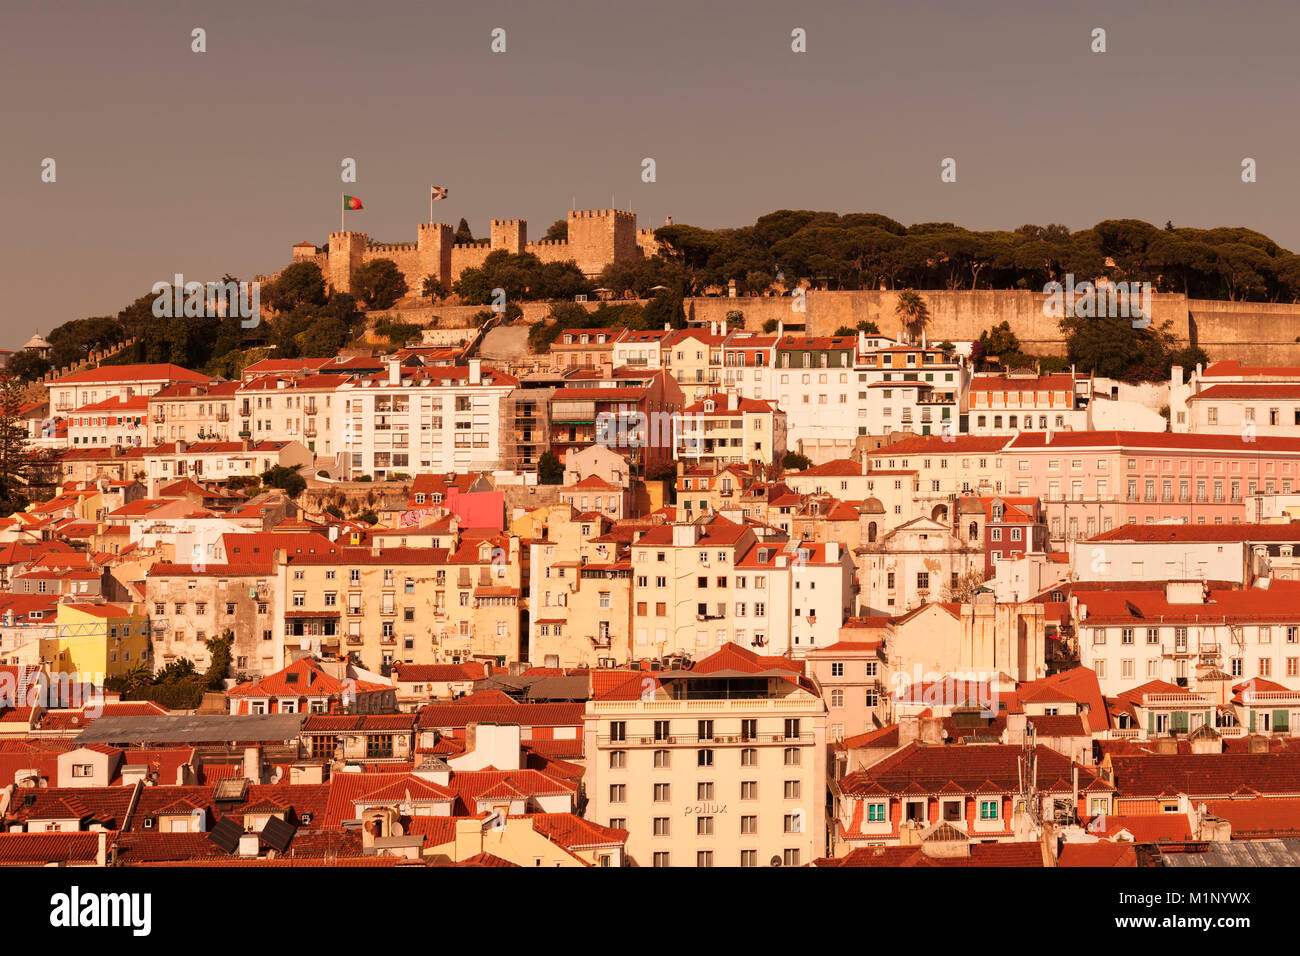 View over the old town to Castelo de Sao Jorge castle at sunset, Lisbon, Portugal, Europe - Stock Image